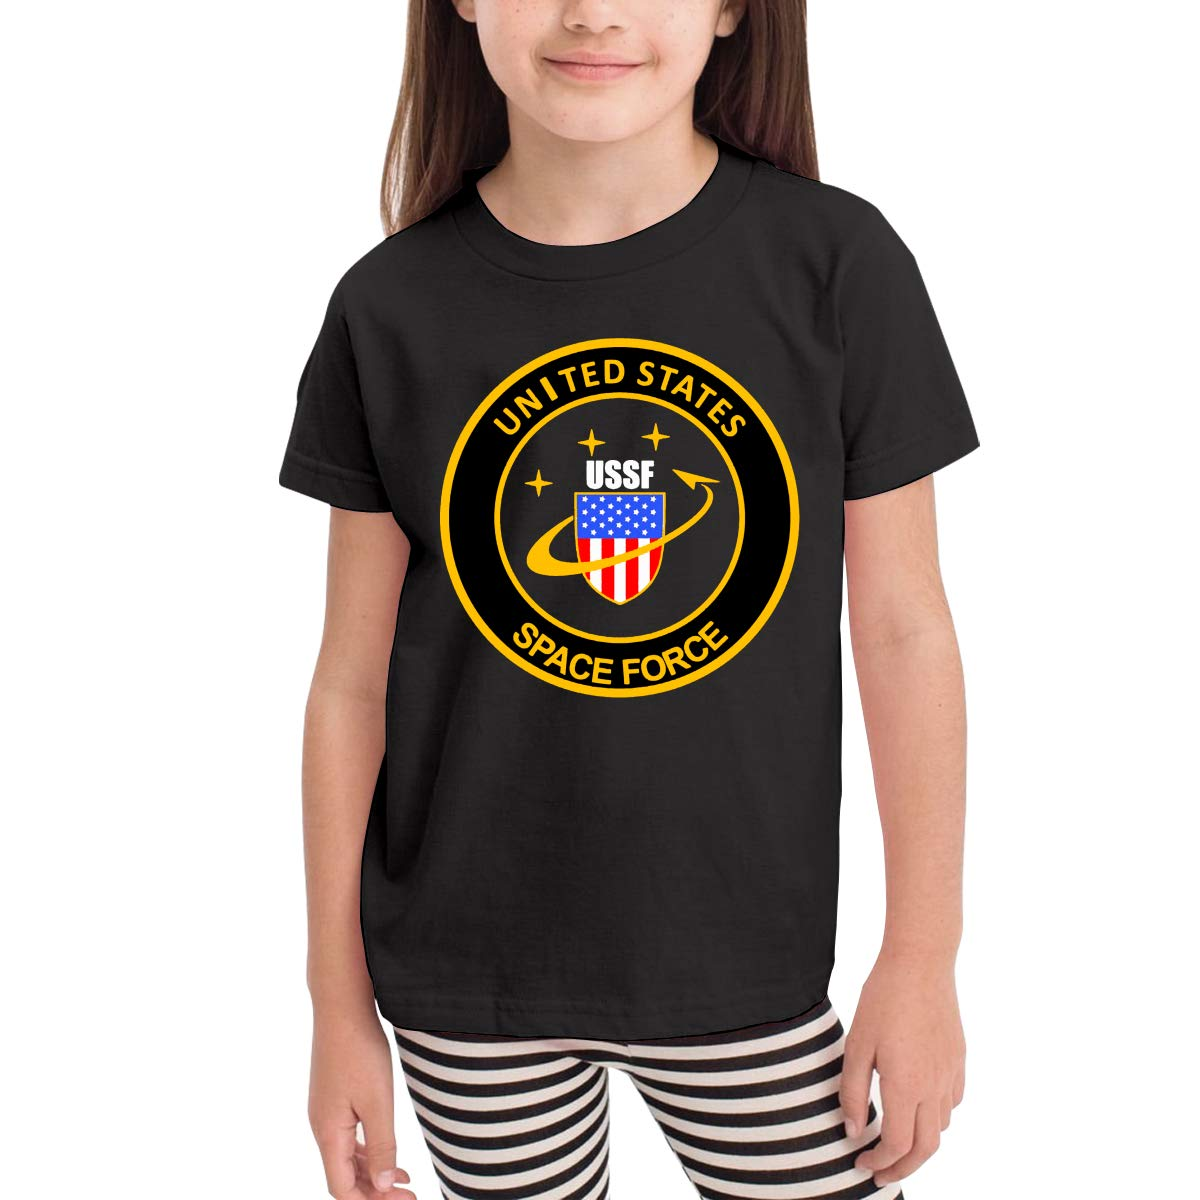 United States Space Force USSF Toddler Boys Girls Short Sleeve T Shirt Kids Summer Top Tee 100/% Cotton Clothes 2-6 T